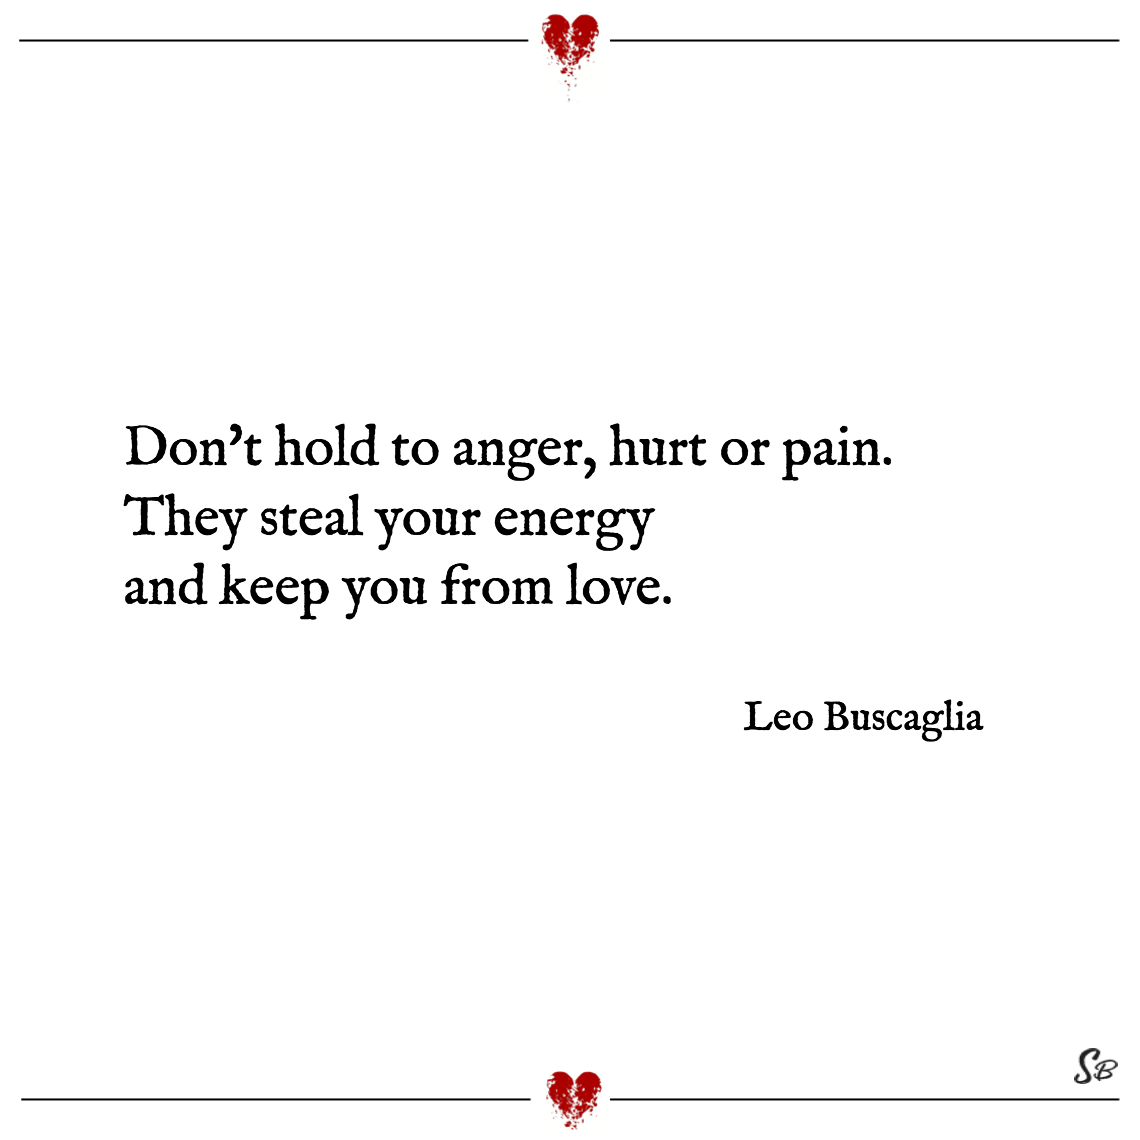 Don't hold to anger, hurt or pain. they steal your energy and keep you from love. leo buscaglia